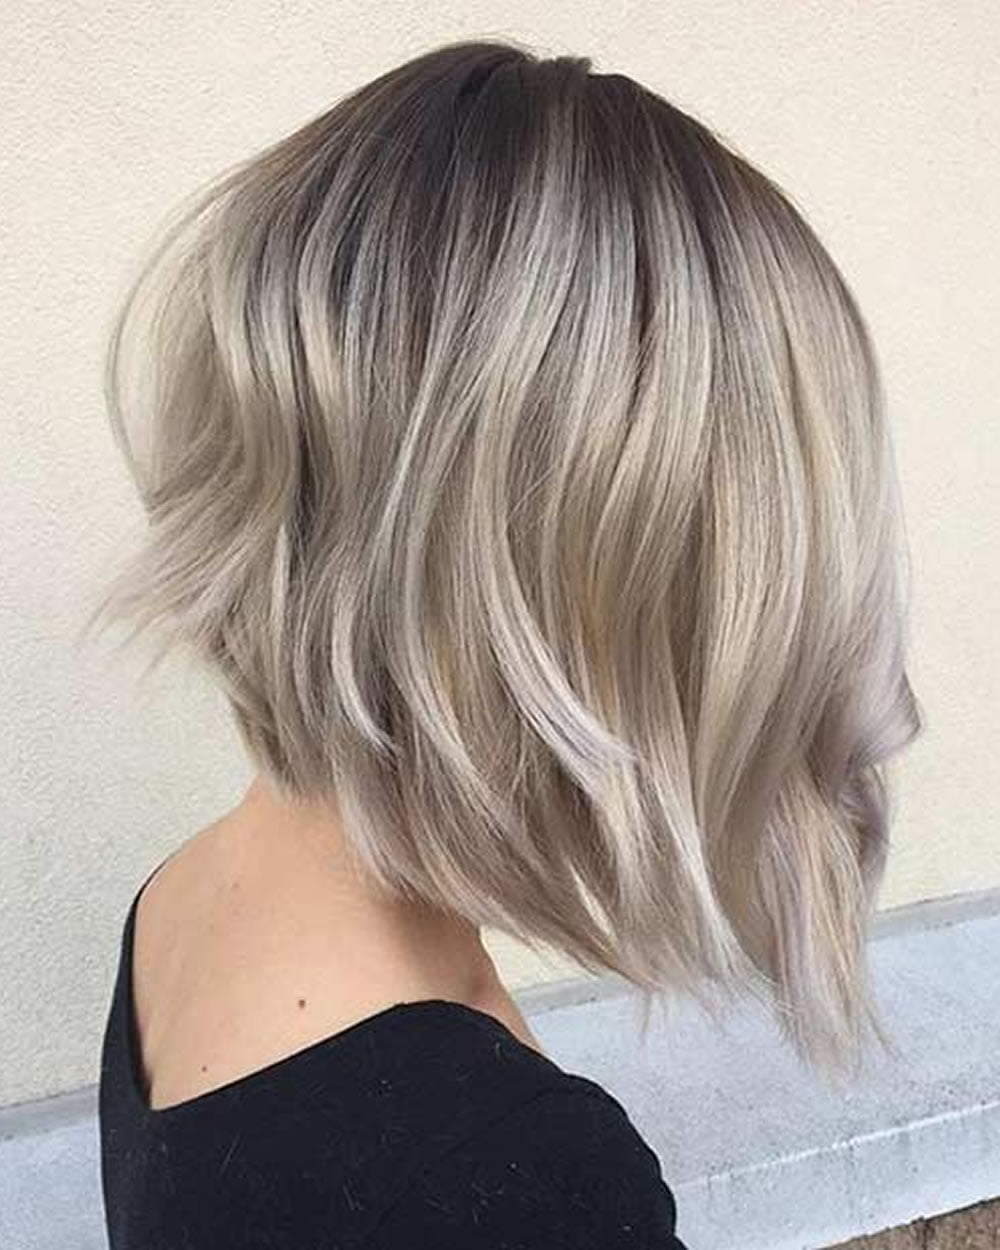 20 latest mixed 2018 short haircuts for women bob pixie styles page 5 hairstyles. Black Bedroom Furniture Sets. Home Design Ideas